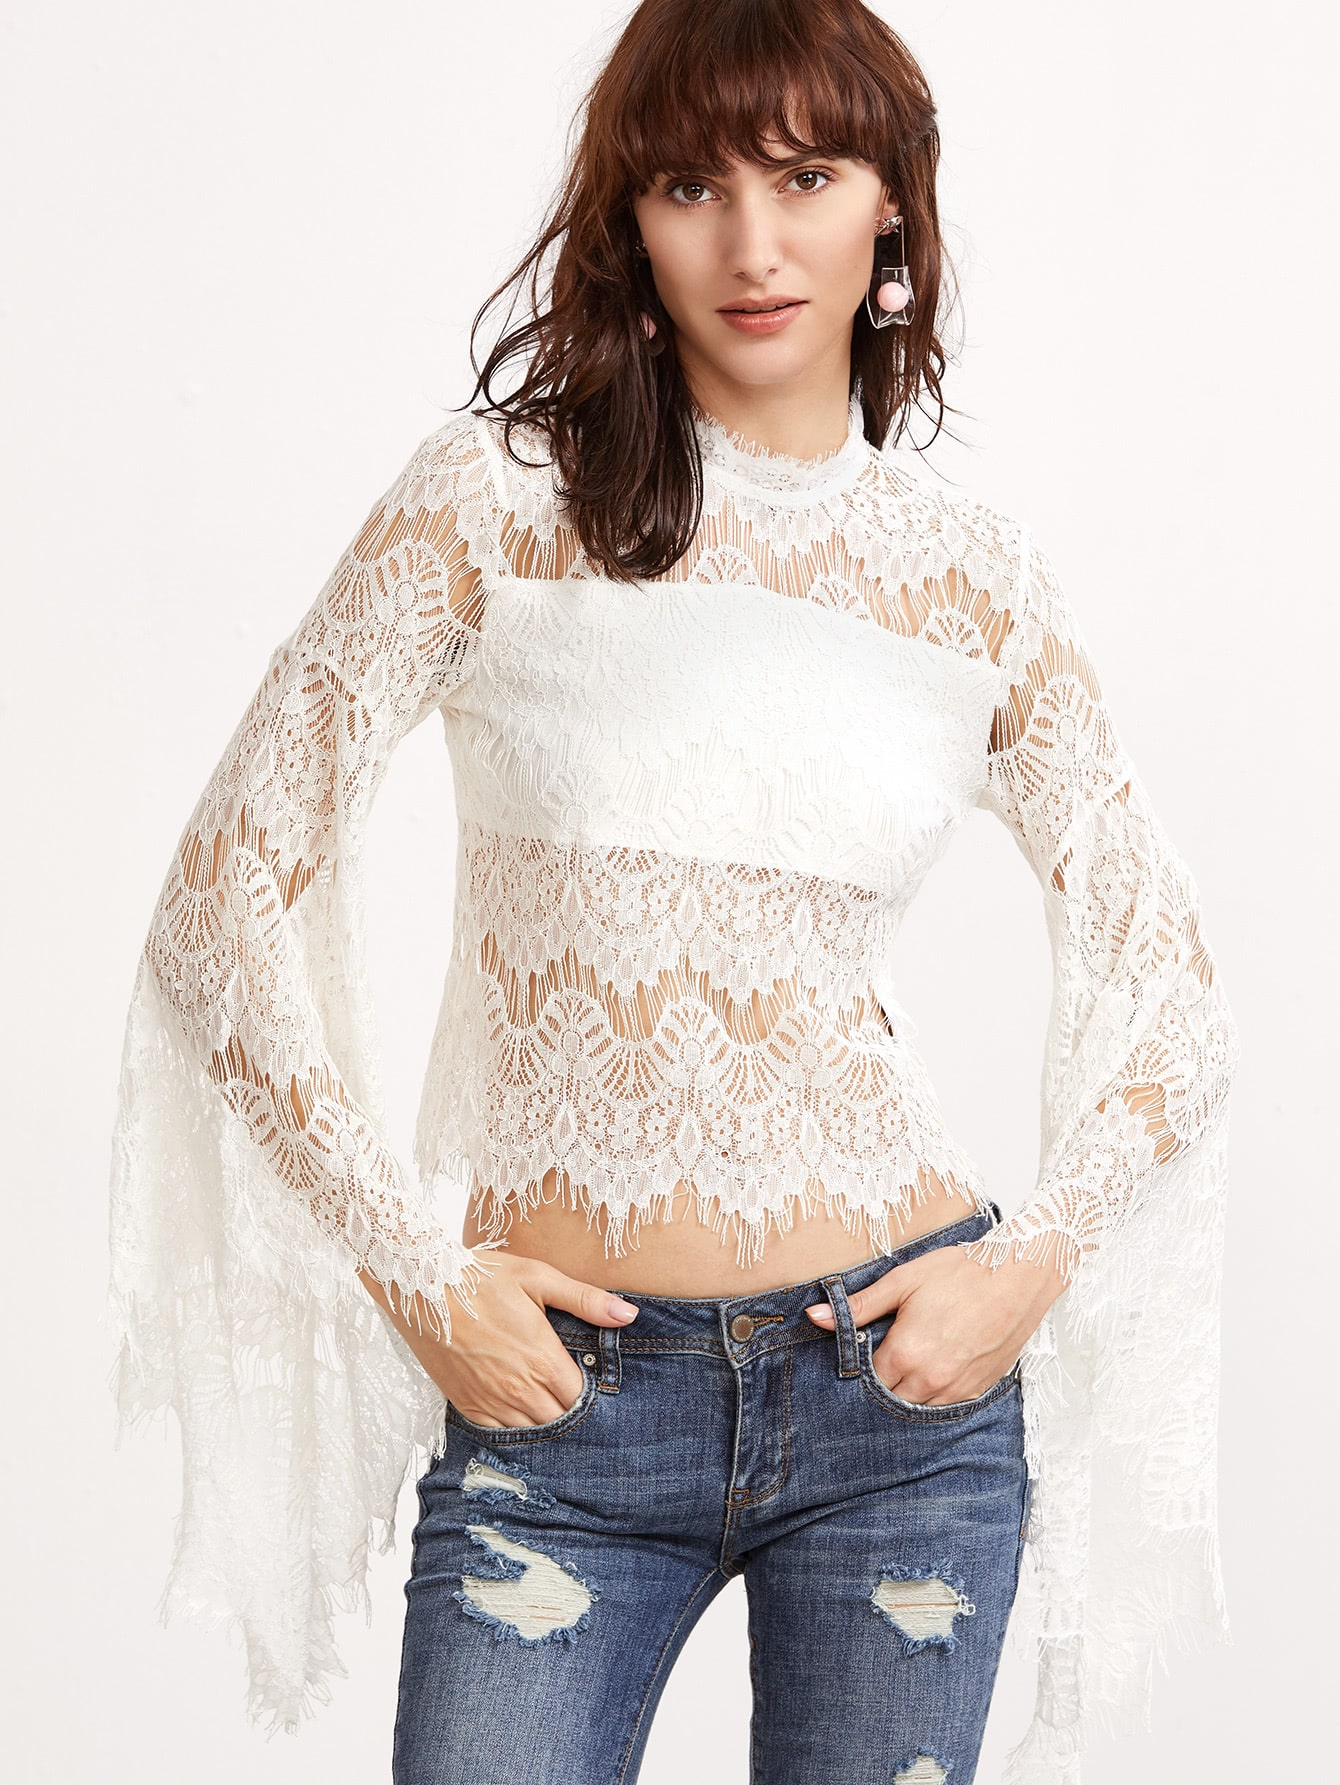 White Oversized Bell Sleeve Sheer Floral Lace Top blouse161130715